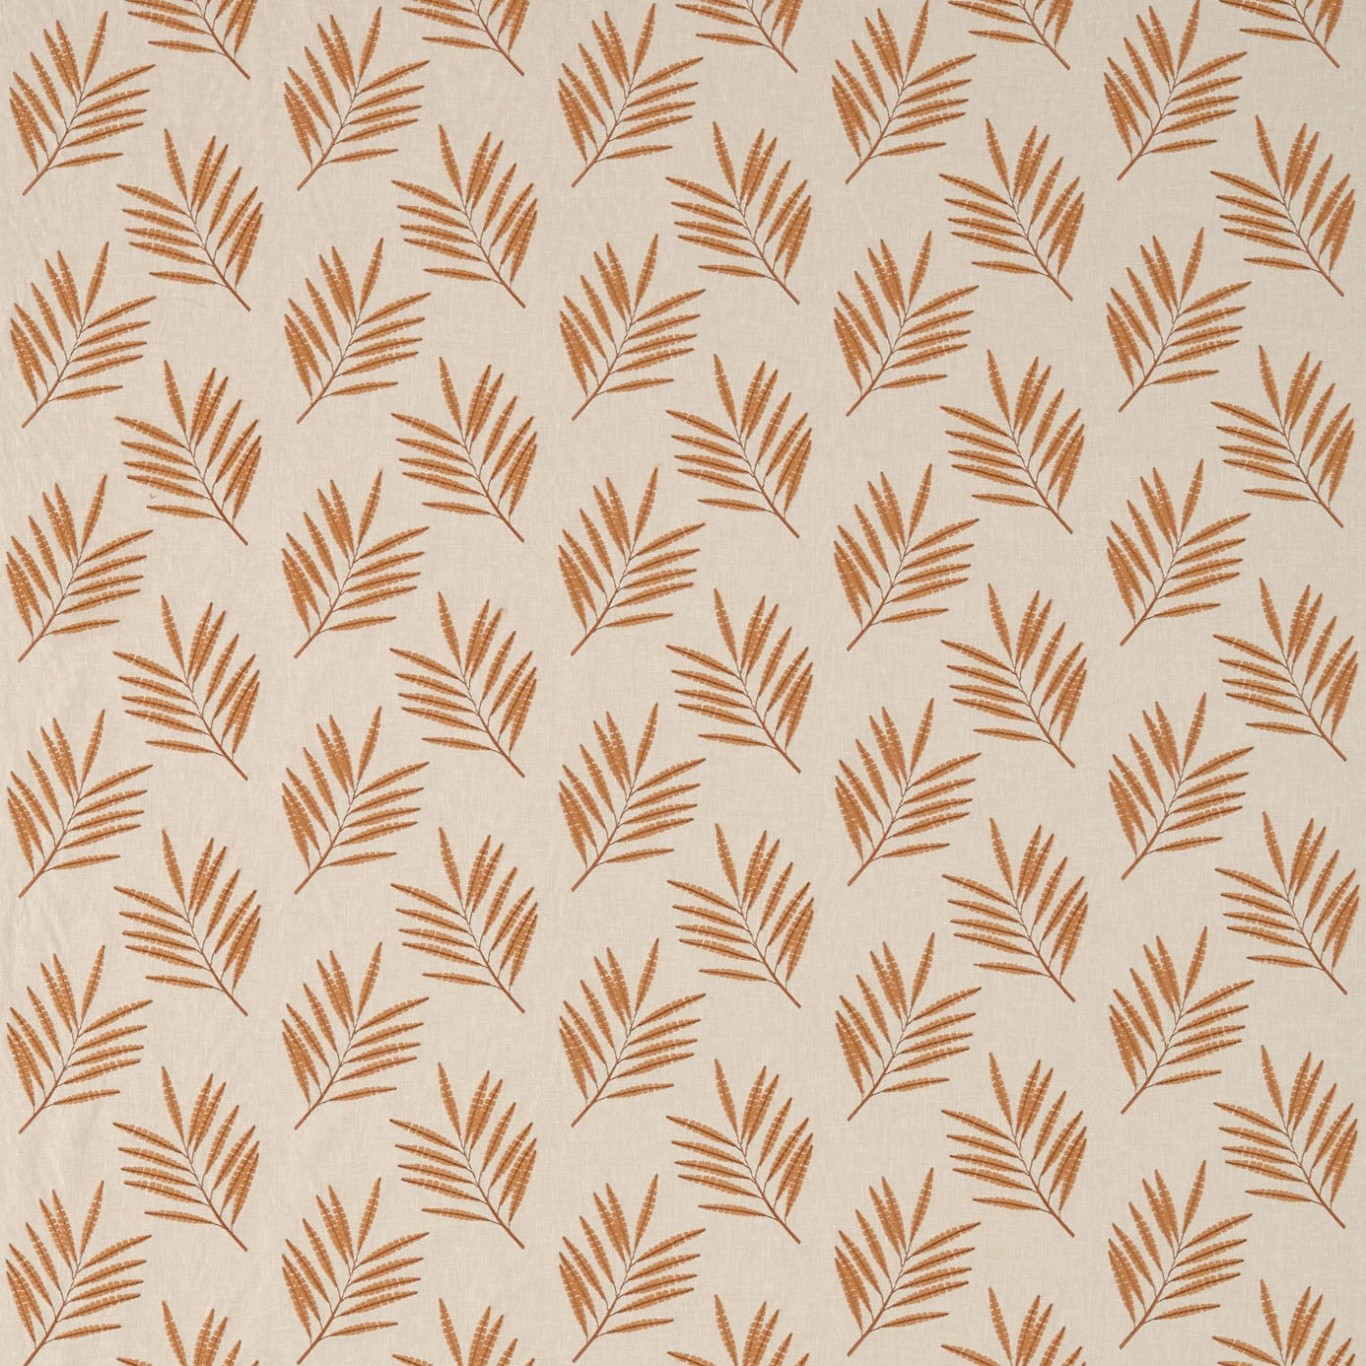 Image of Sanderson Tilton Brick Fabric 236283